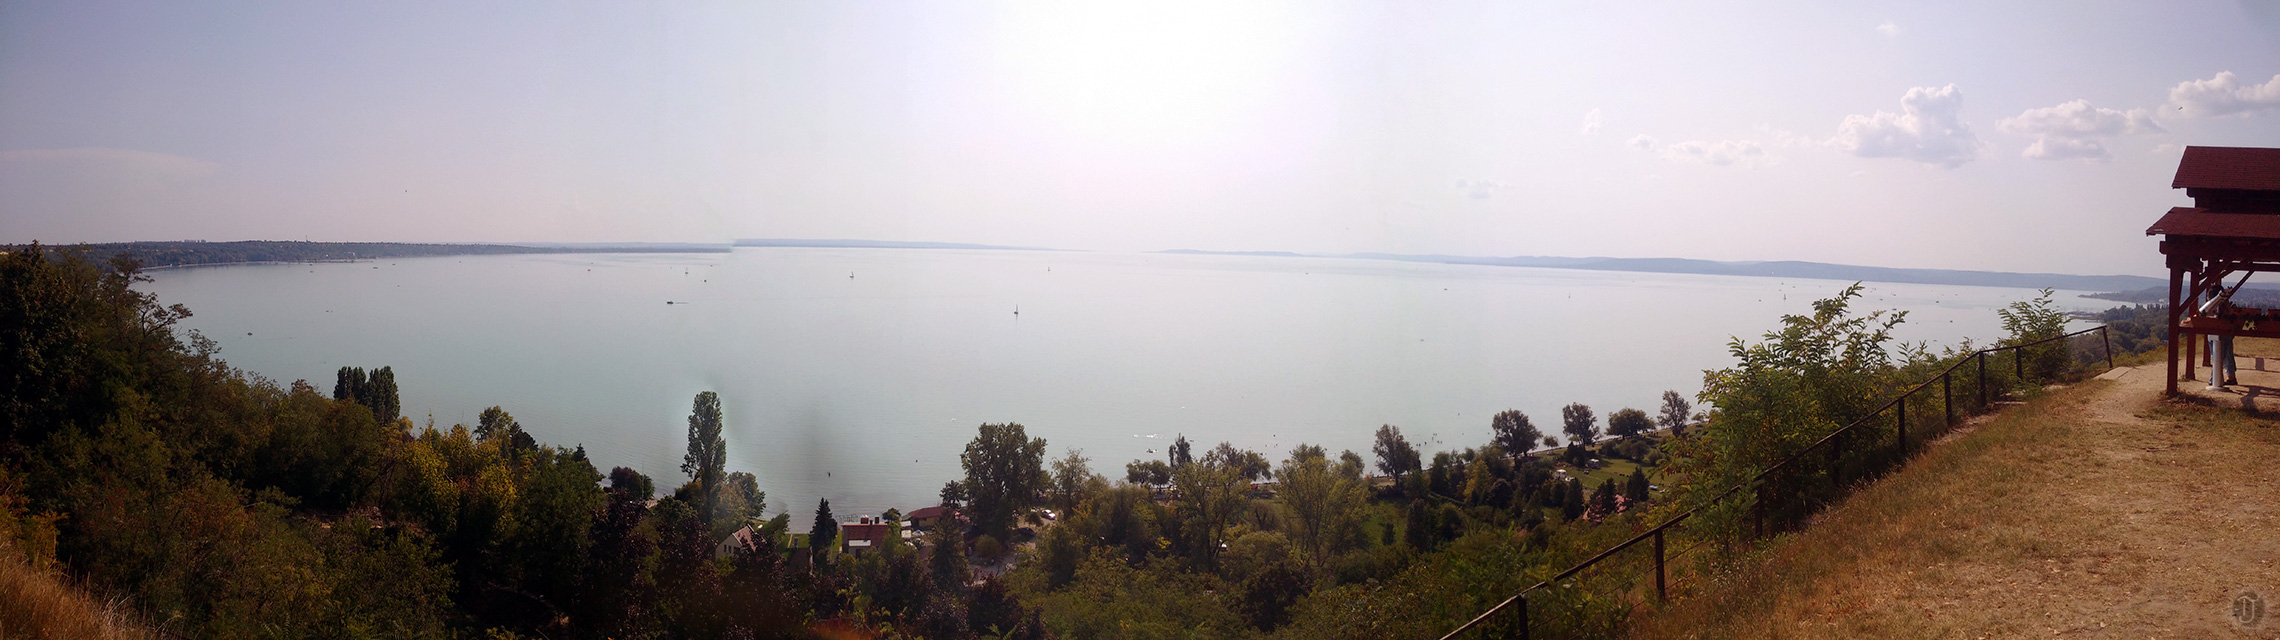 Lake Balaton Shoreline - Panorama